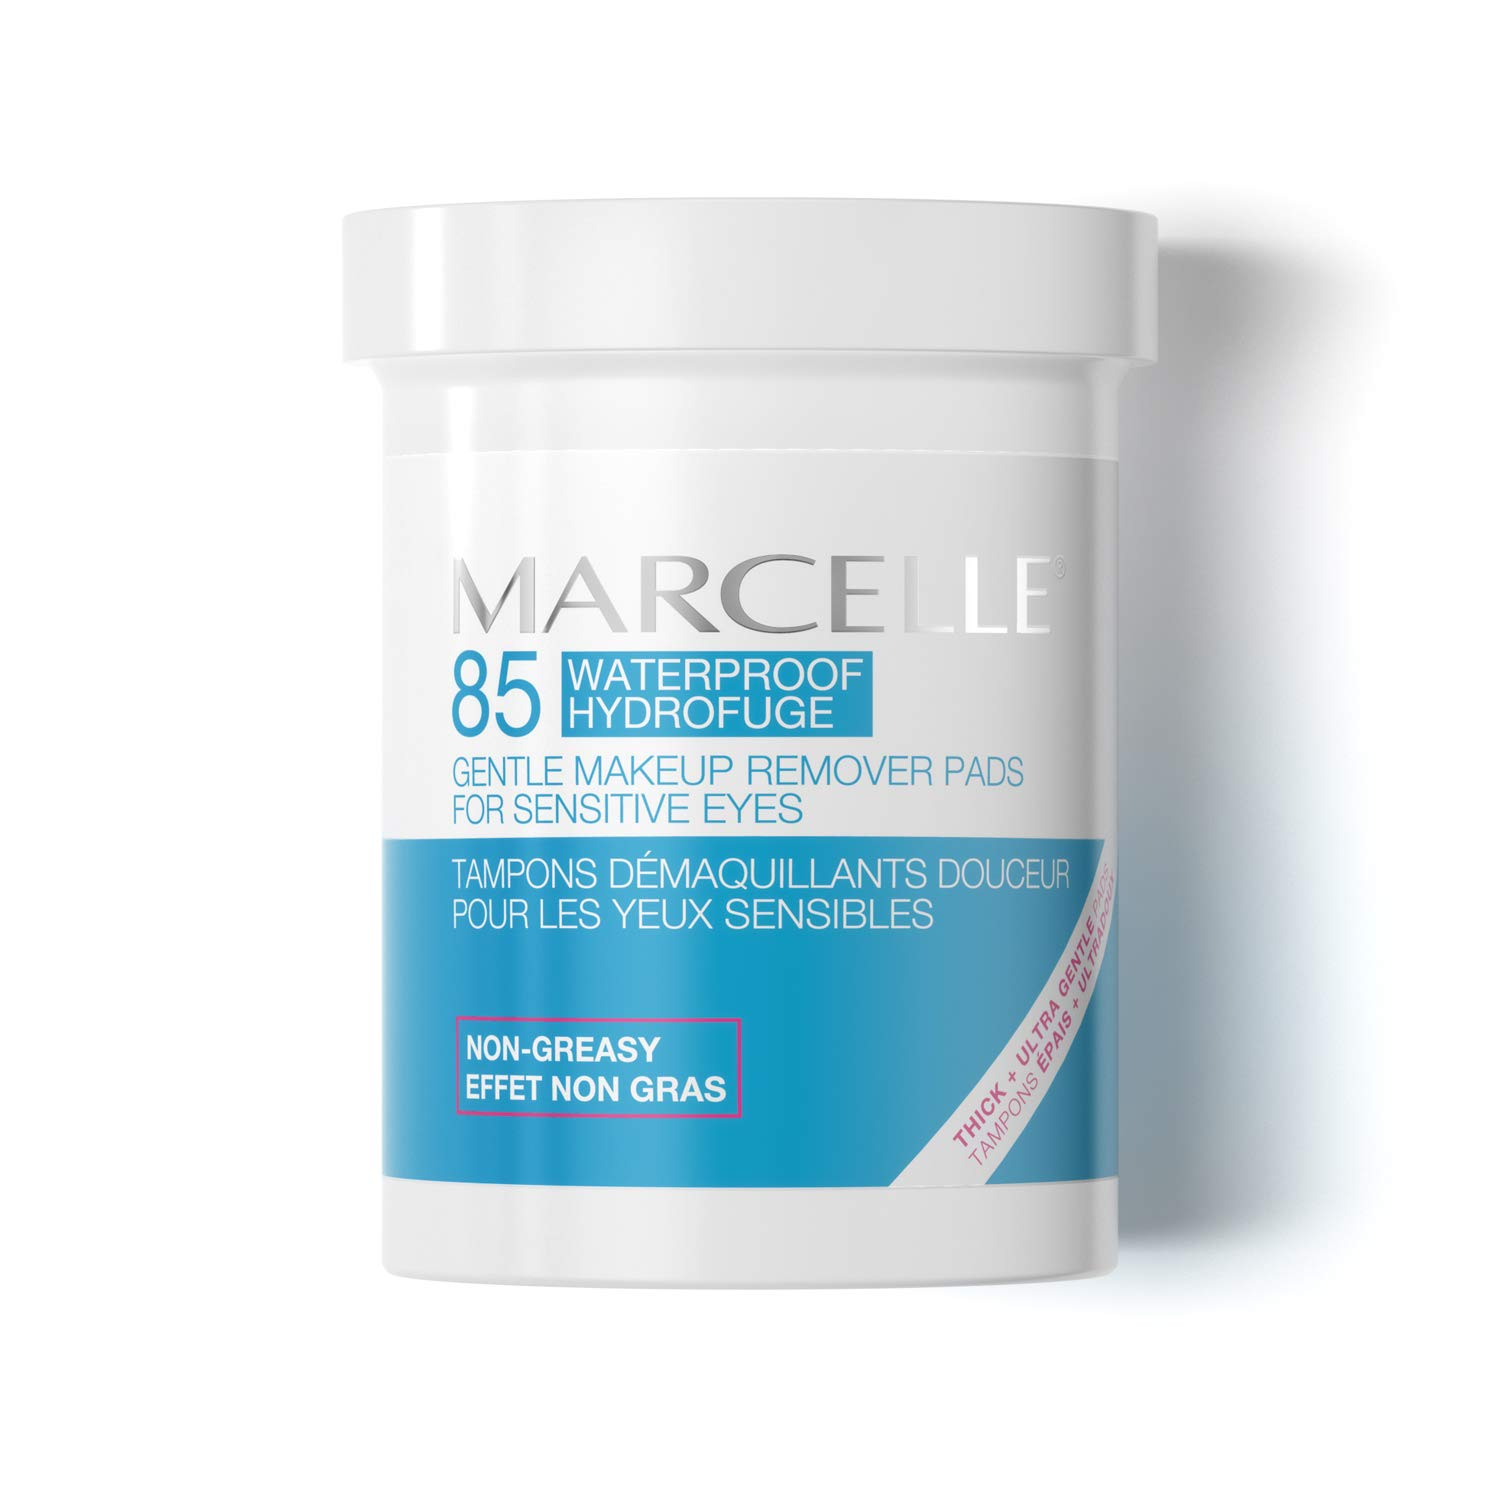 Marcelle Gentle Eye Makeup Remover Pads, 85 Pads Marcelle group - Beauty 167196